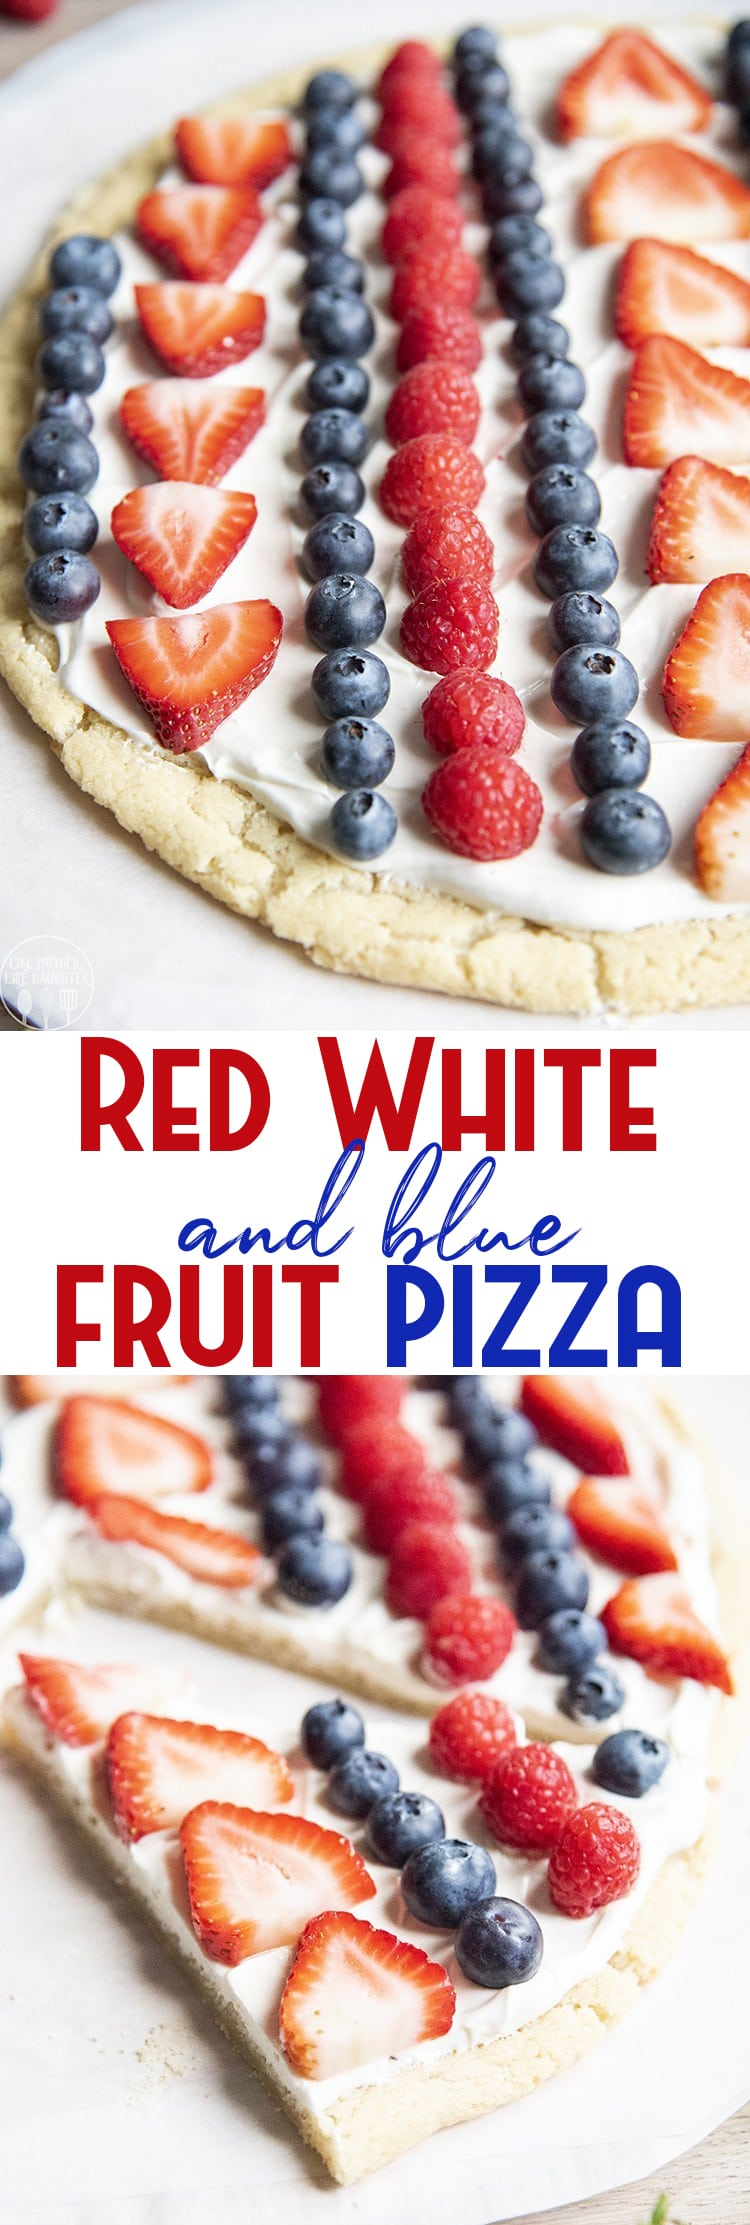 This red white and blue fruit pizza is the perfect patriotic dessert for Memorial Day, Fourth of July, or just all summer long. A sweet sugar cookie crust, topped with a cream cheese frosting, and fresh berries for the perfect sweet treat.